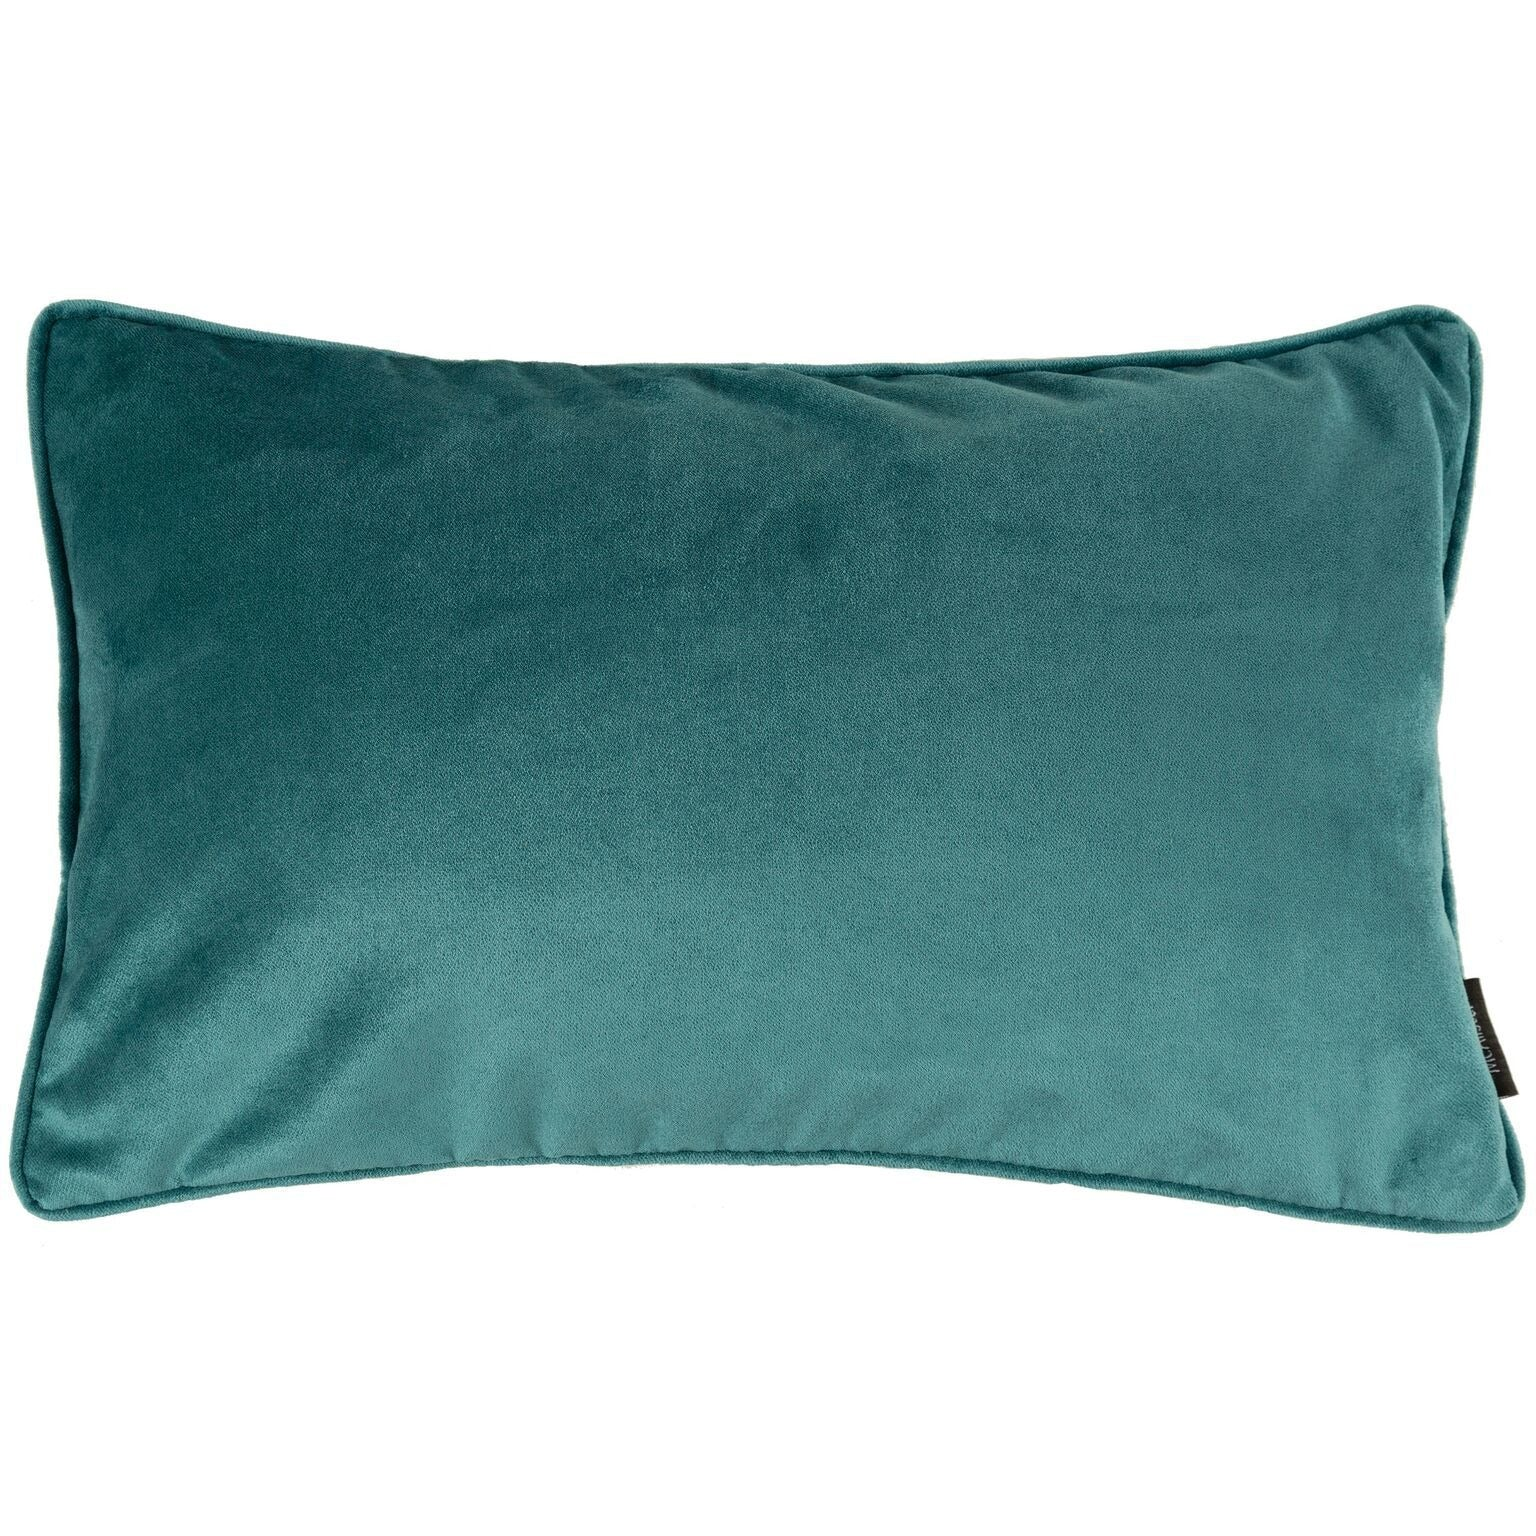 McAlister Textiles Matt Blue Teal Velvet Pillow Pillow Cover Only 50cm x 30cm